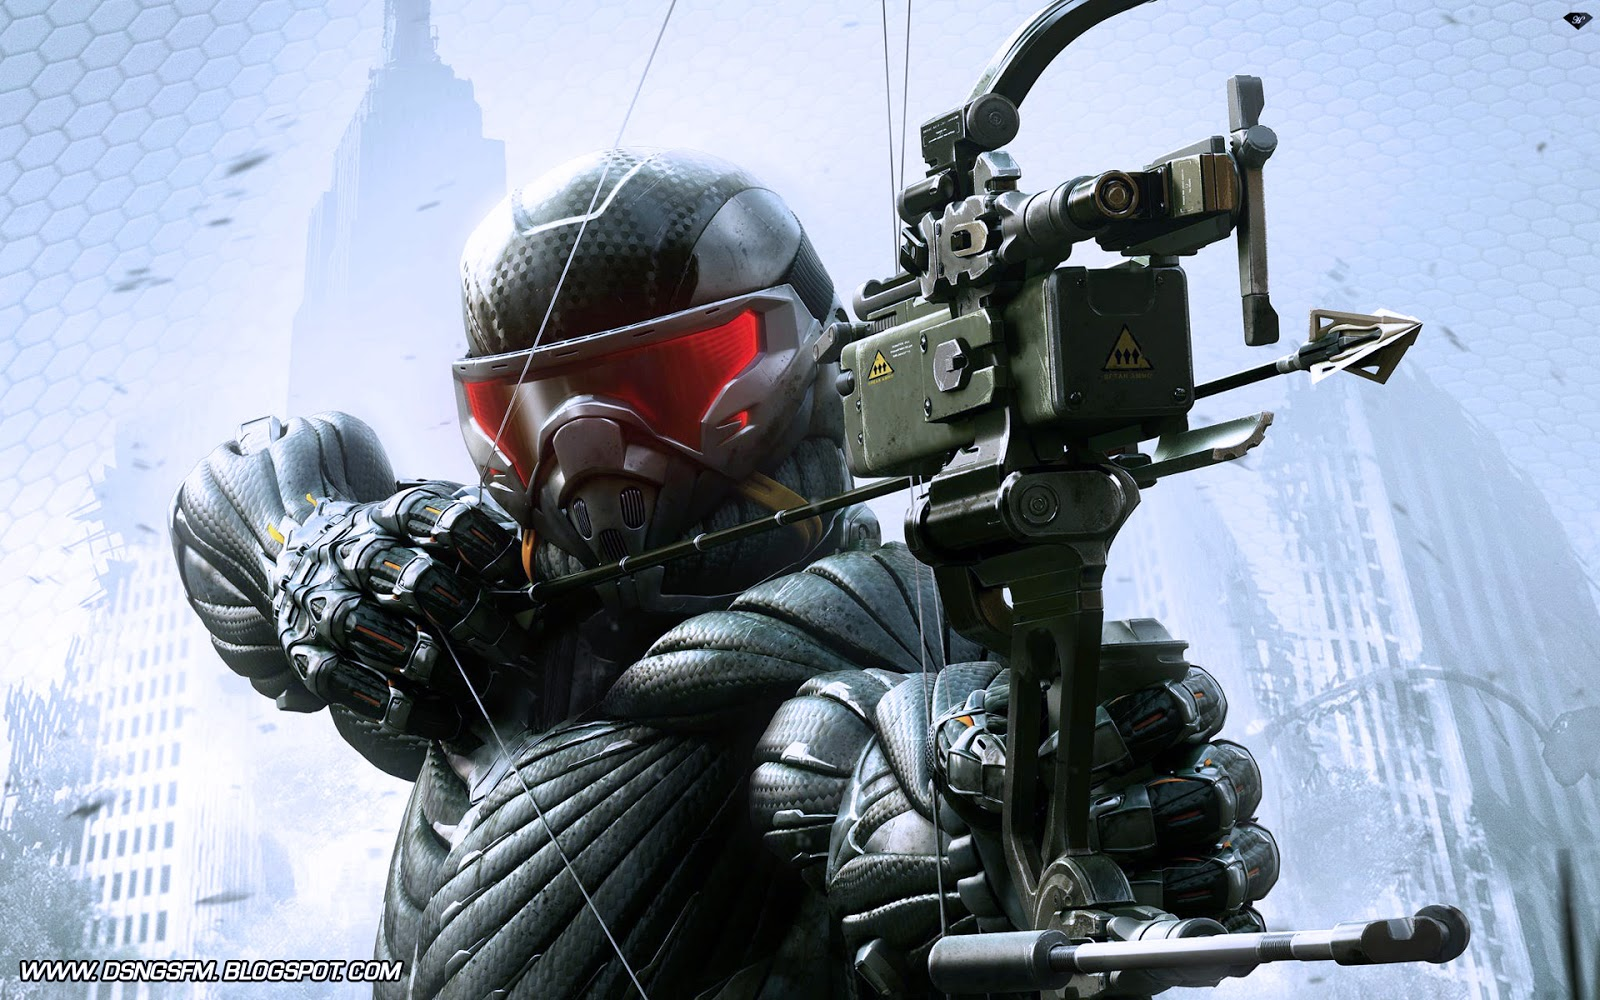 http://3.bp.blogspot.com/-WCDwLH9q2e0/USHcsG0-mzI/AAAAAAAAIv0/QHd2z3Ykzag/s1600/sci+fi+crysis+3+crygen+compound+bow+and+arrow+archer+soldier+armor+costume+black+ops+sniper+starcraft+ghost+stealth+operative+starwars+gears+of+war+jugement+3d+model+wallpaper.jpg